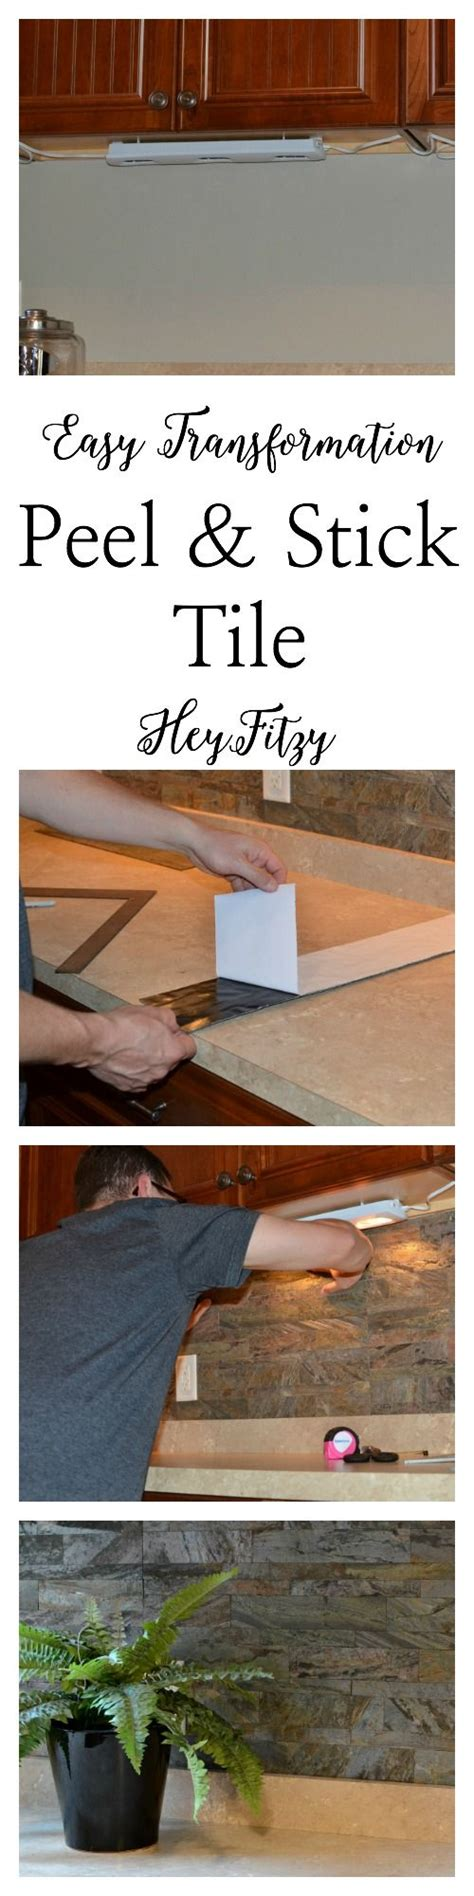 Kitchen Ideas Photos How To Tile Without All The Hassle Diy Ideas Grout And